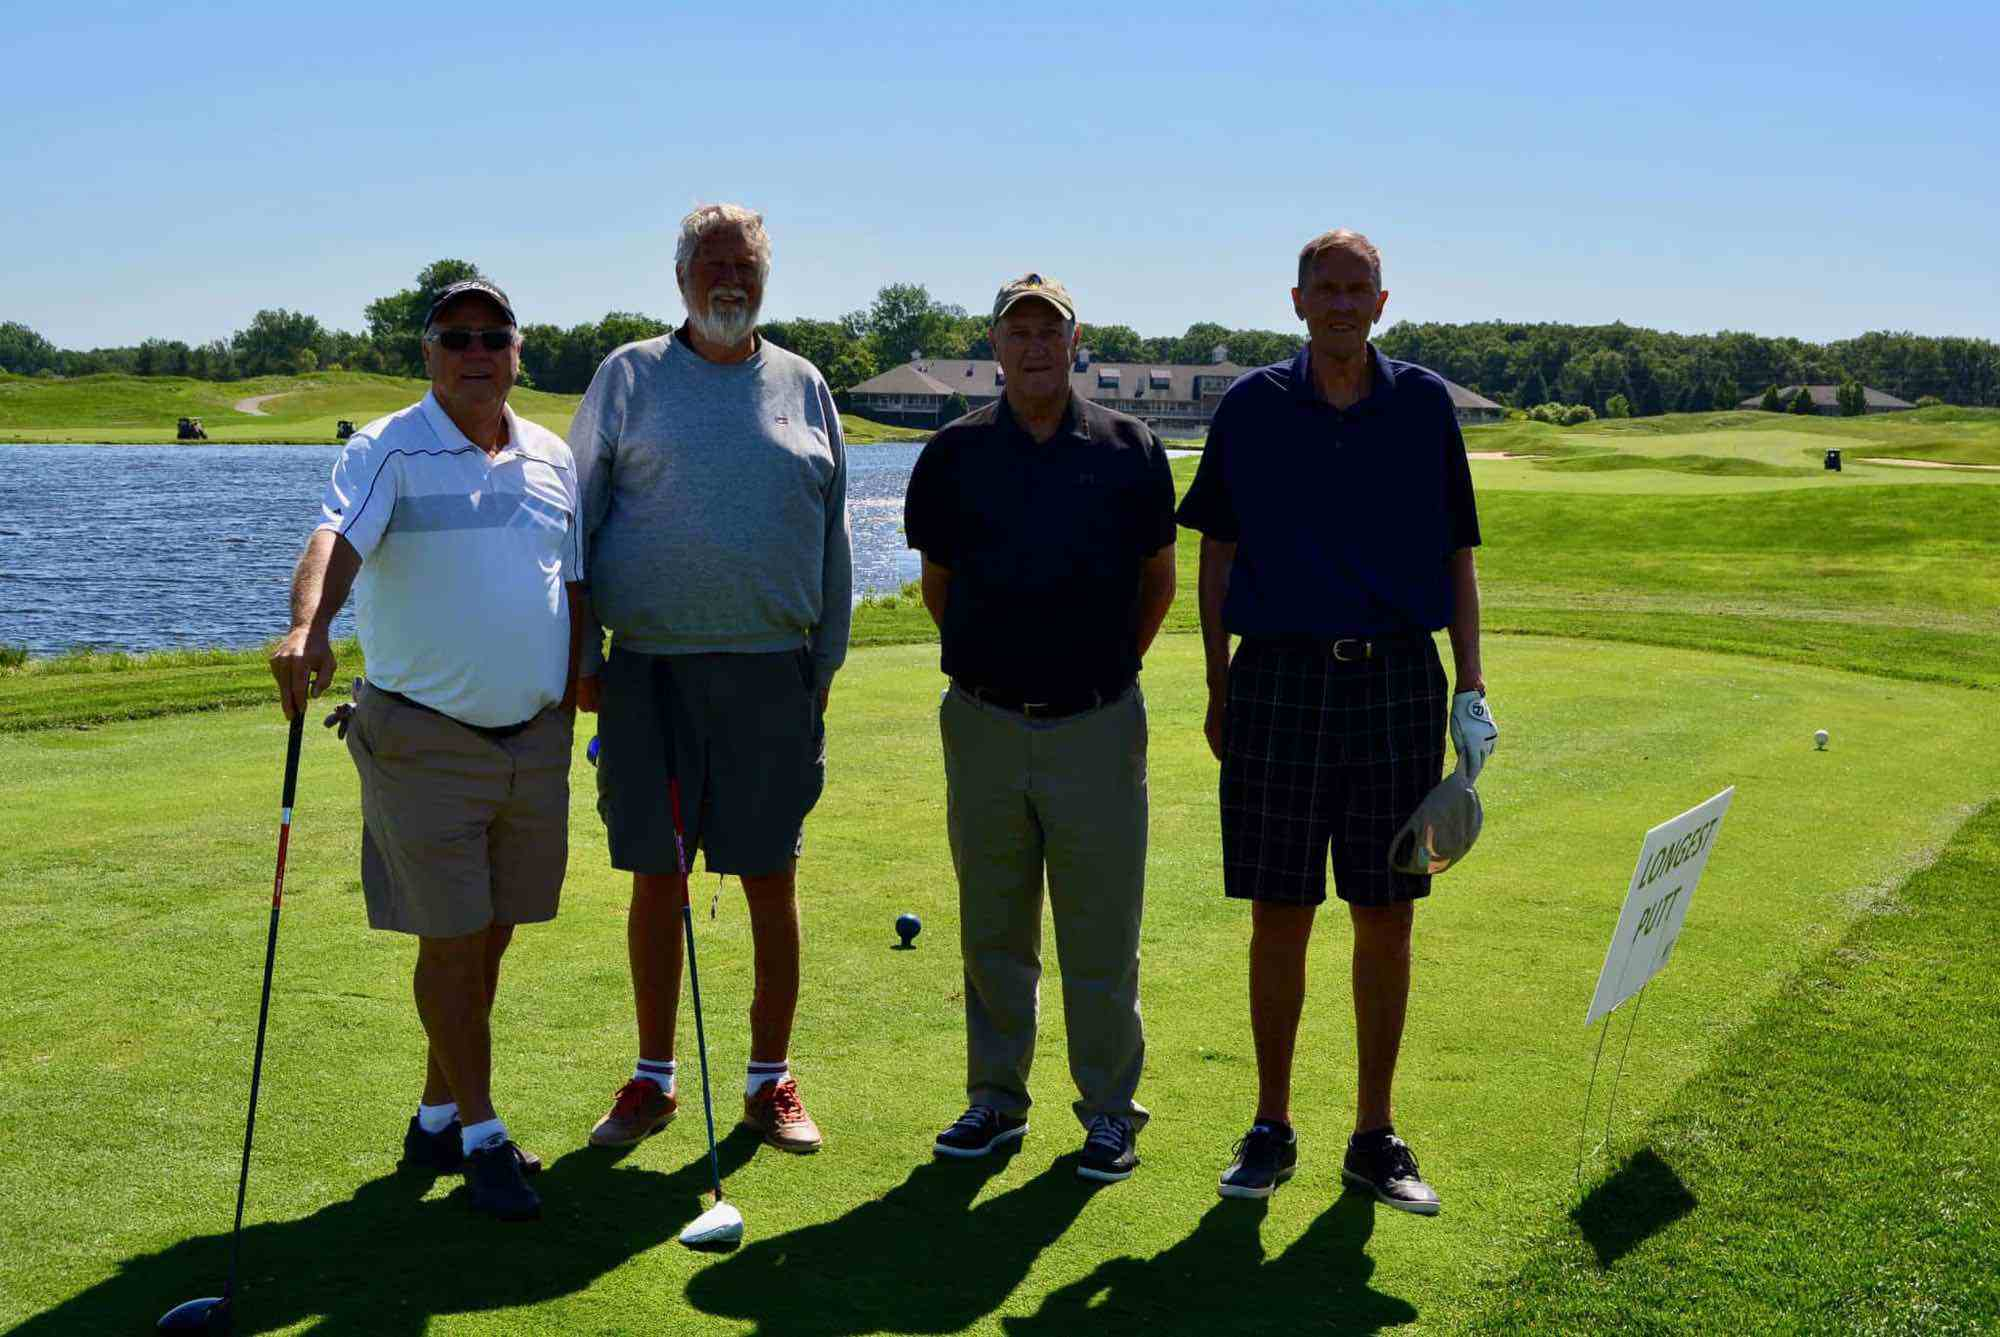 MTM RECOGNITION FOURSOME (Left to right): Jim Hoekwater, Andy DeVries, Ed Douma (Winner of the Men's Longest Drive), Dave Zondervan.